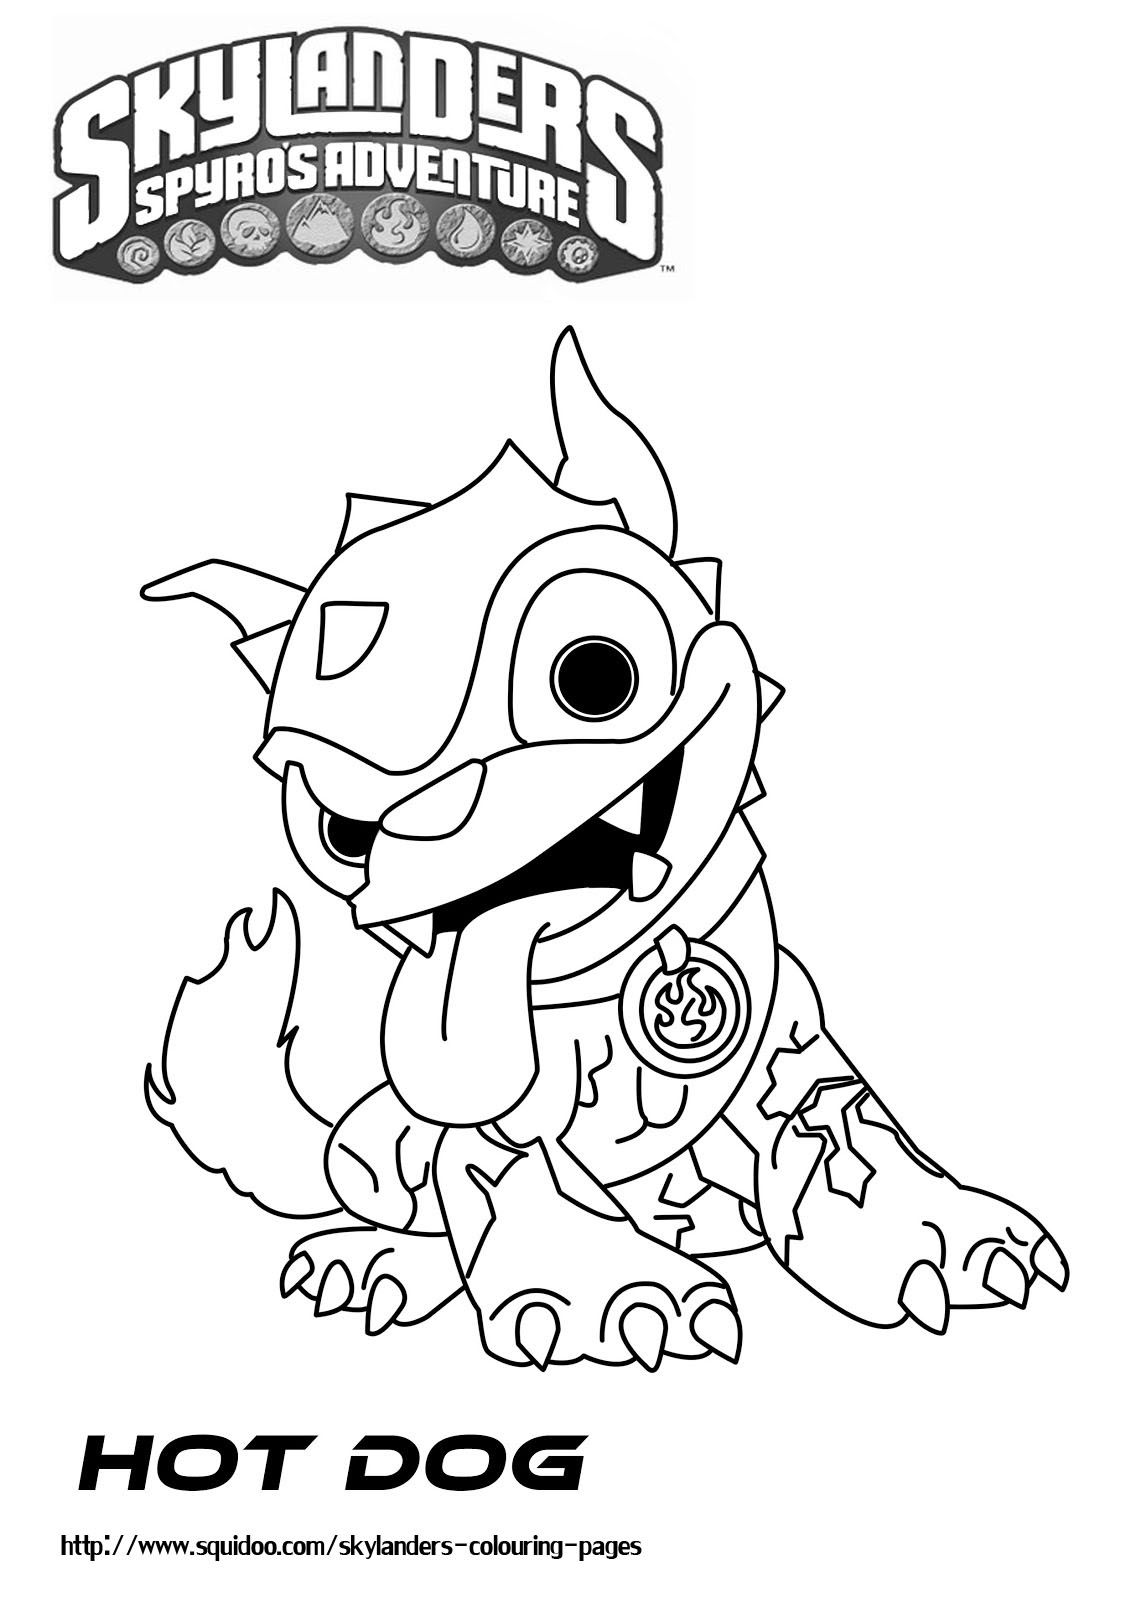 Skylanders Printable Coloring Pages Dog Coloring Page Coloring